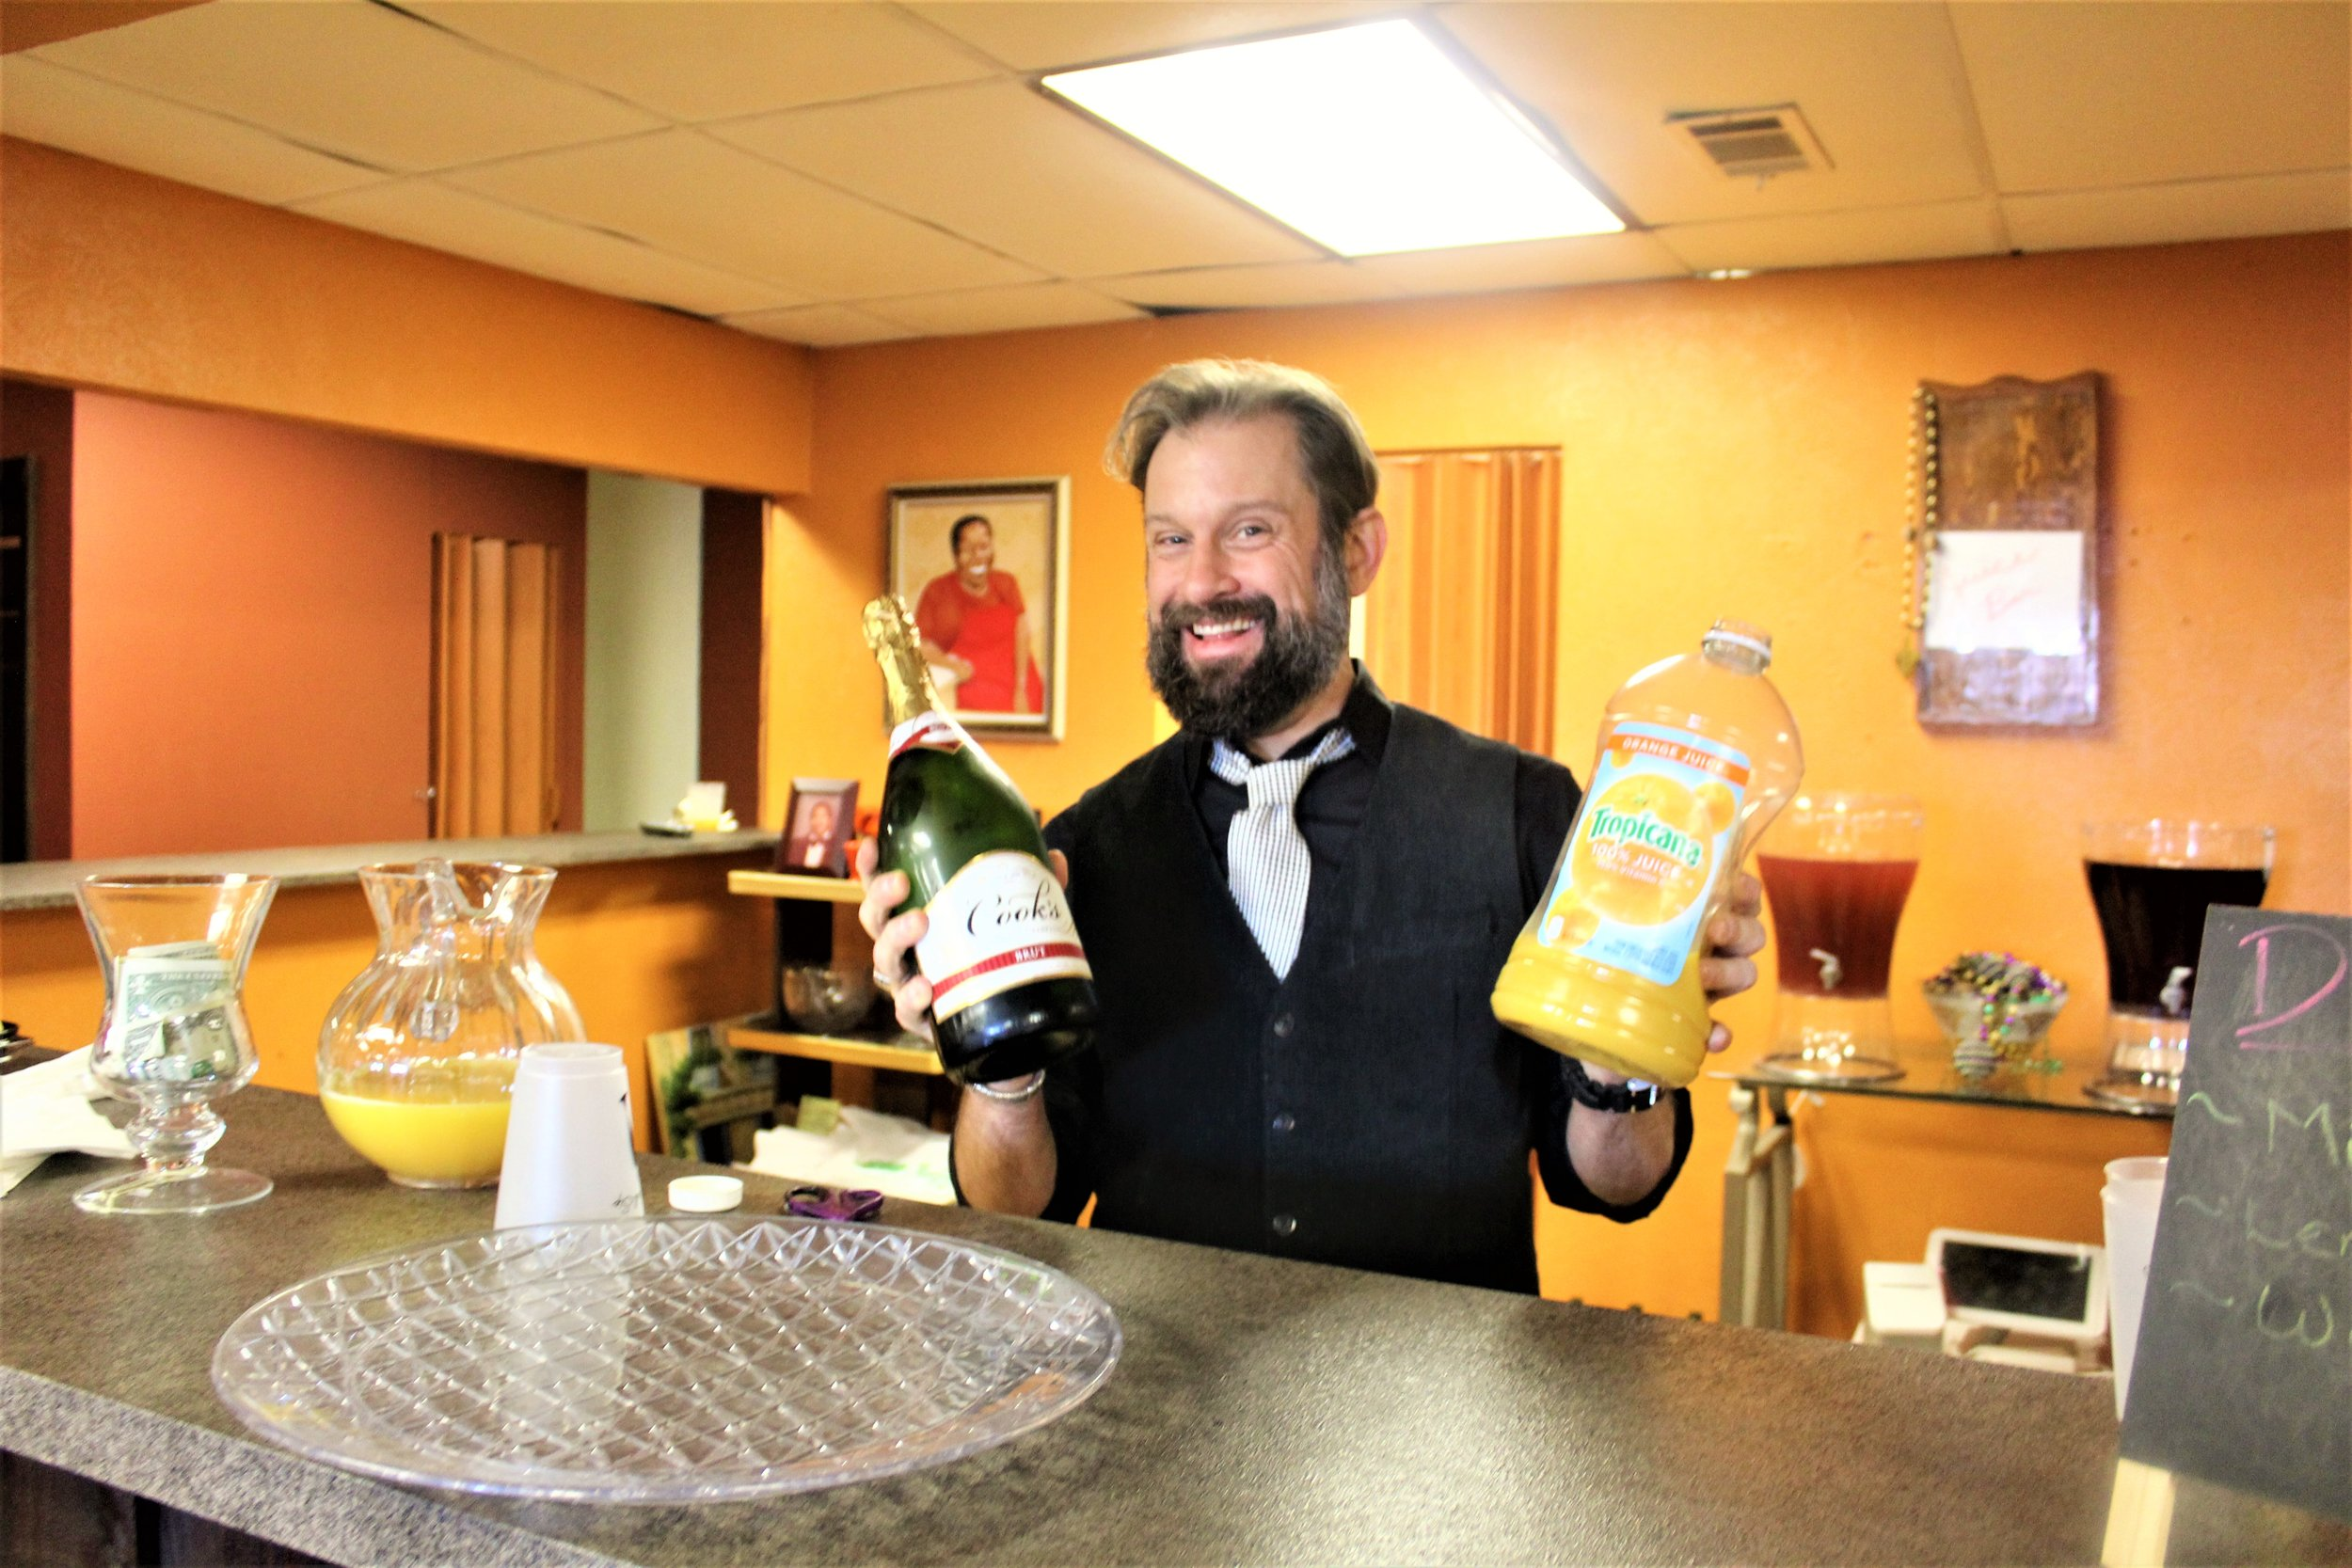 Our bartender serving up endless mimosas with a smile you just can't help but to love.